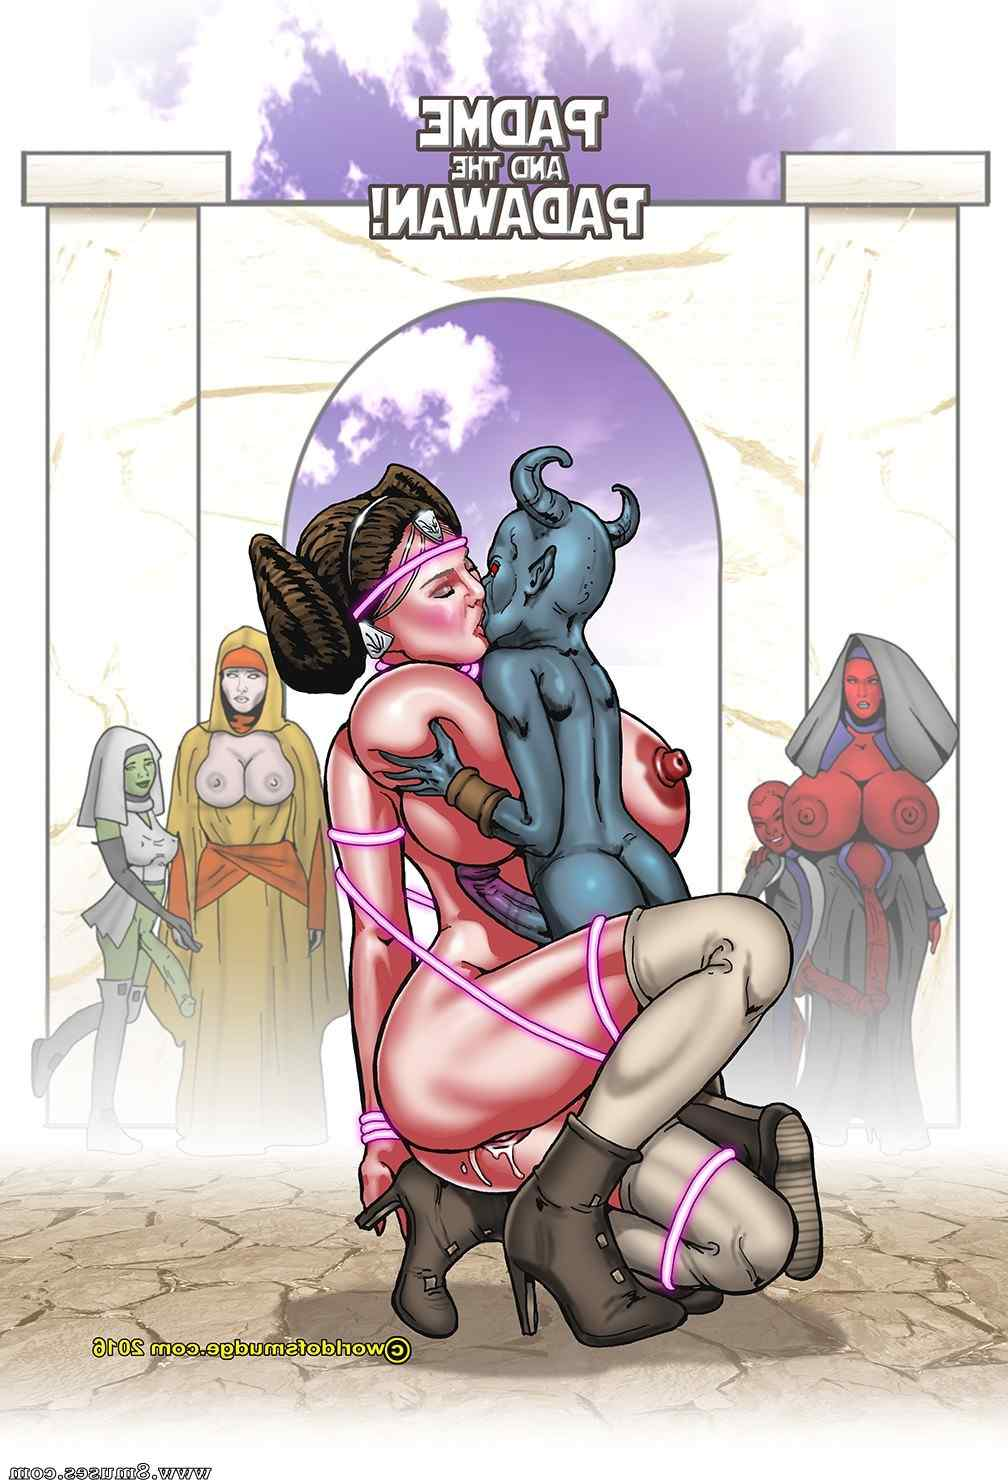 Smudge-Comics/Celebrities-and-Parodies/Padme-and-the-Padawan Padme_and_the_Padawan__8muses_-_Sex_and_Porn_Comics_5.jpg